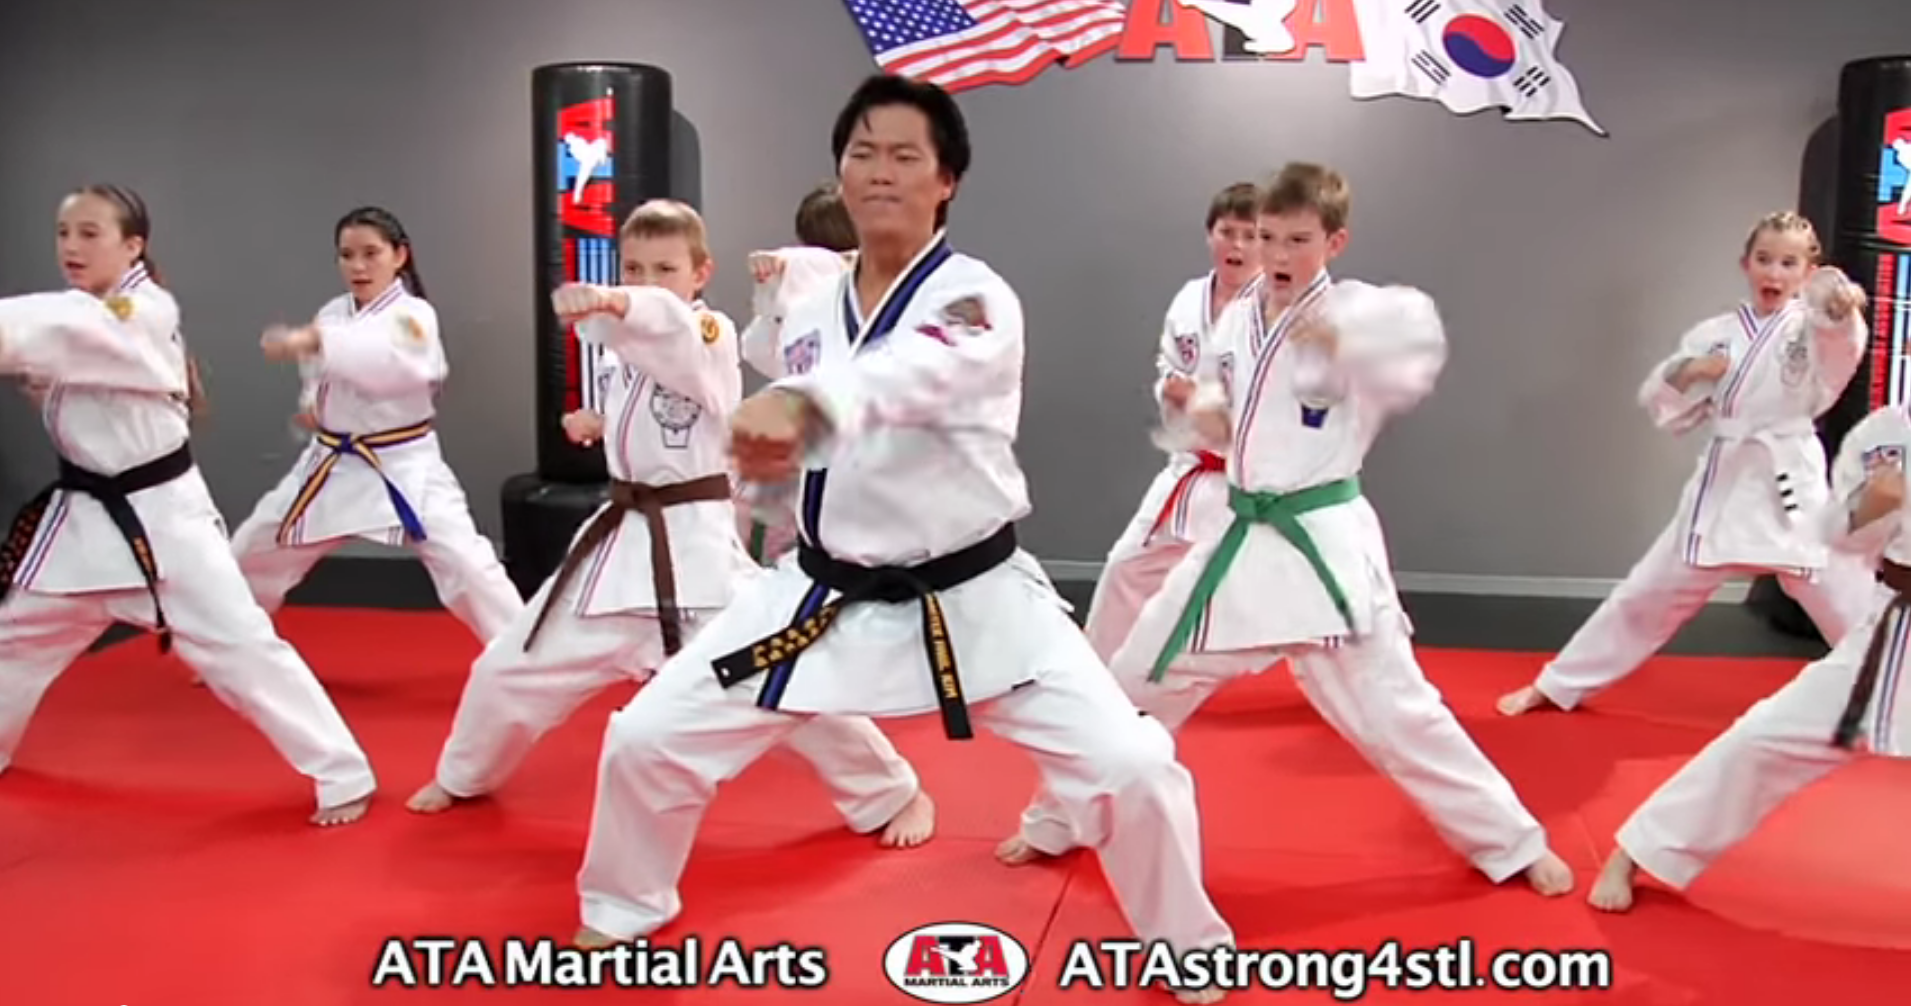 Whether it is Martial Arts, Taekwondo, Karate, or Physical Fitness, students will be provided with all the tools necessary to enhance the body's basic functions. These functions include, but are not limited to flexibility, core strength, and endurance.